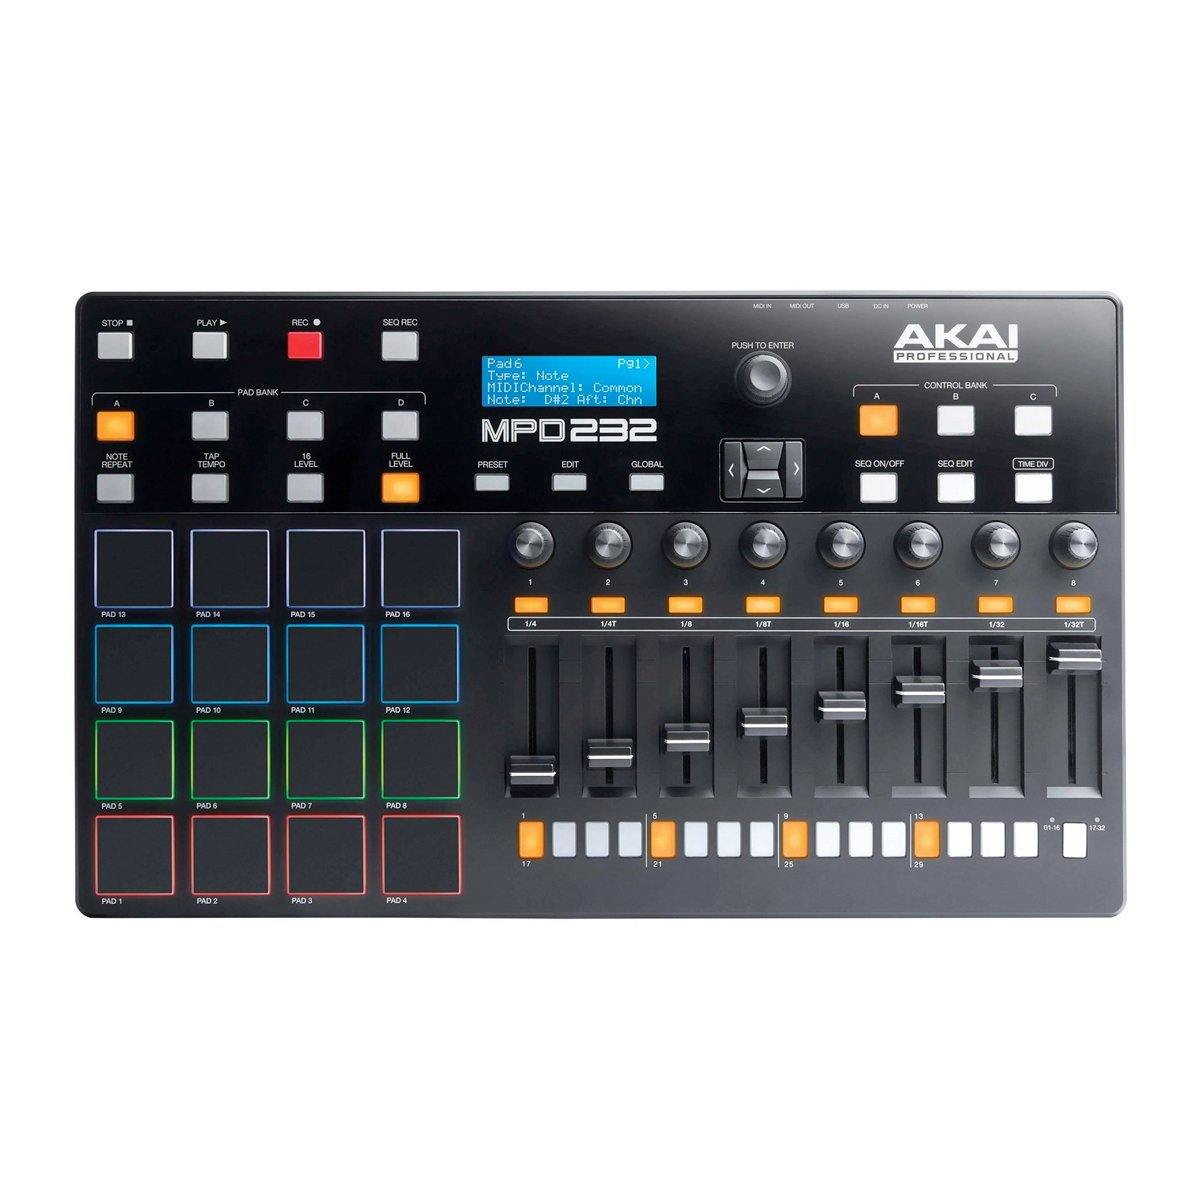 Akai - MPD 232 - ICONS Shop